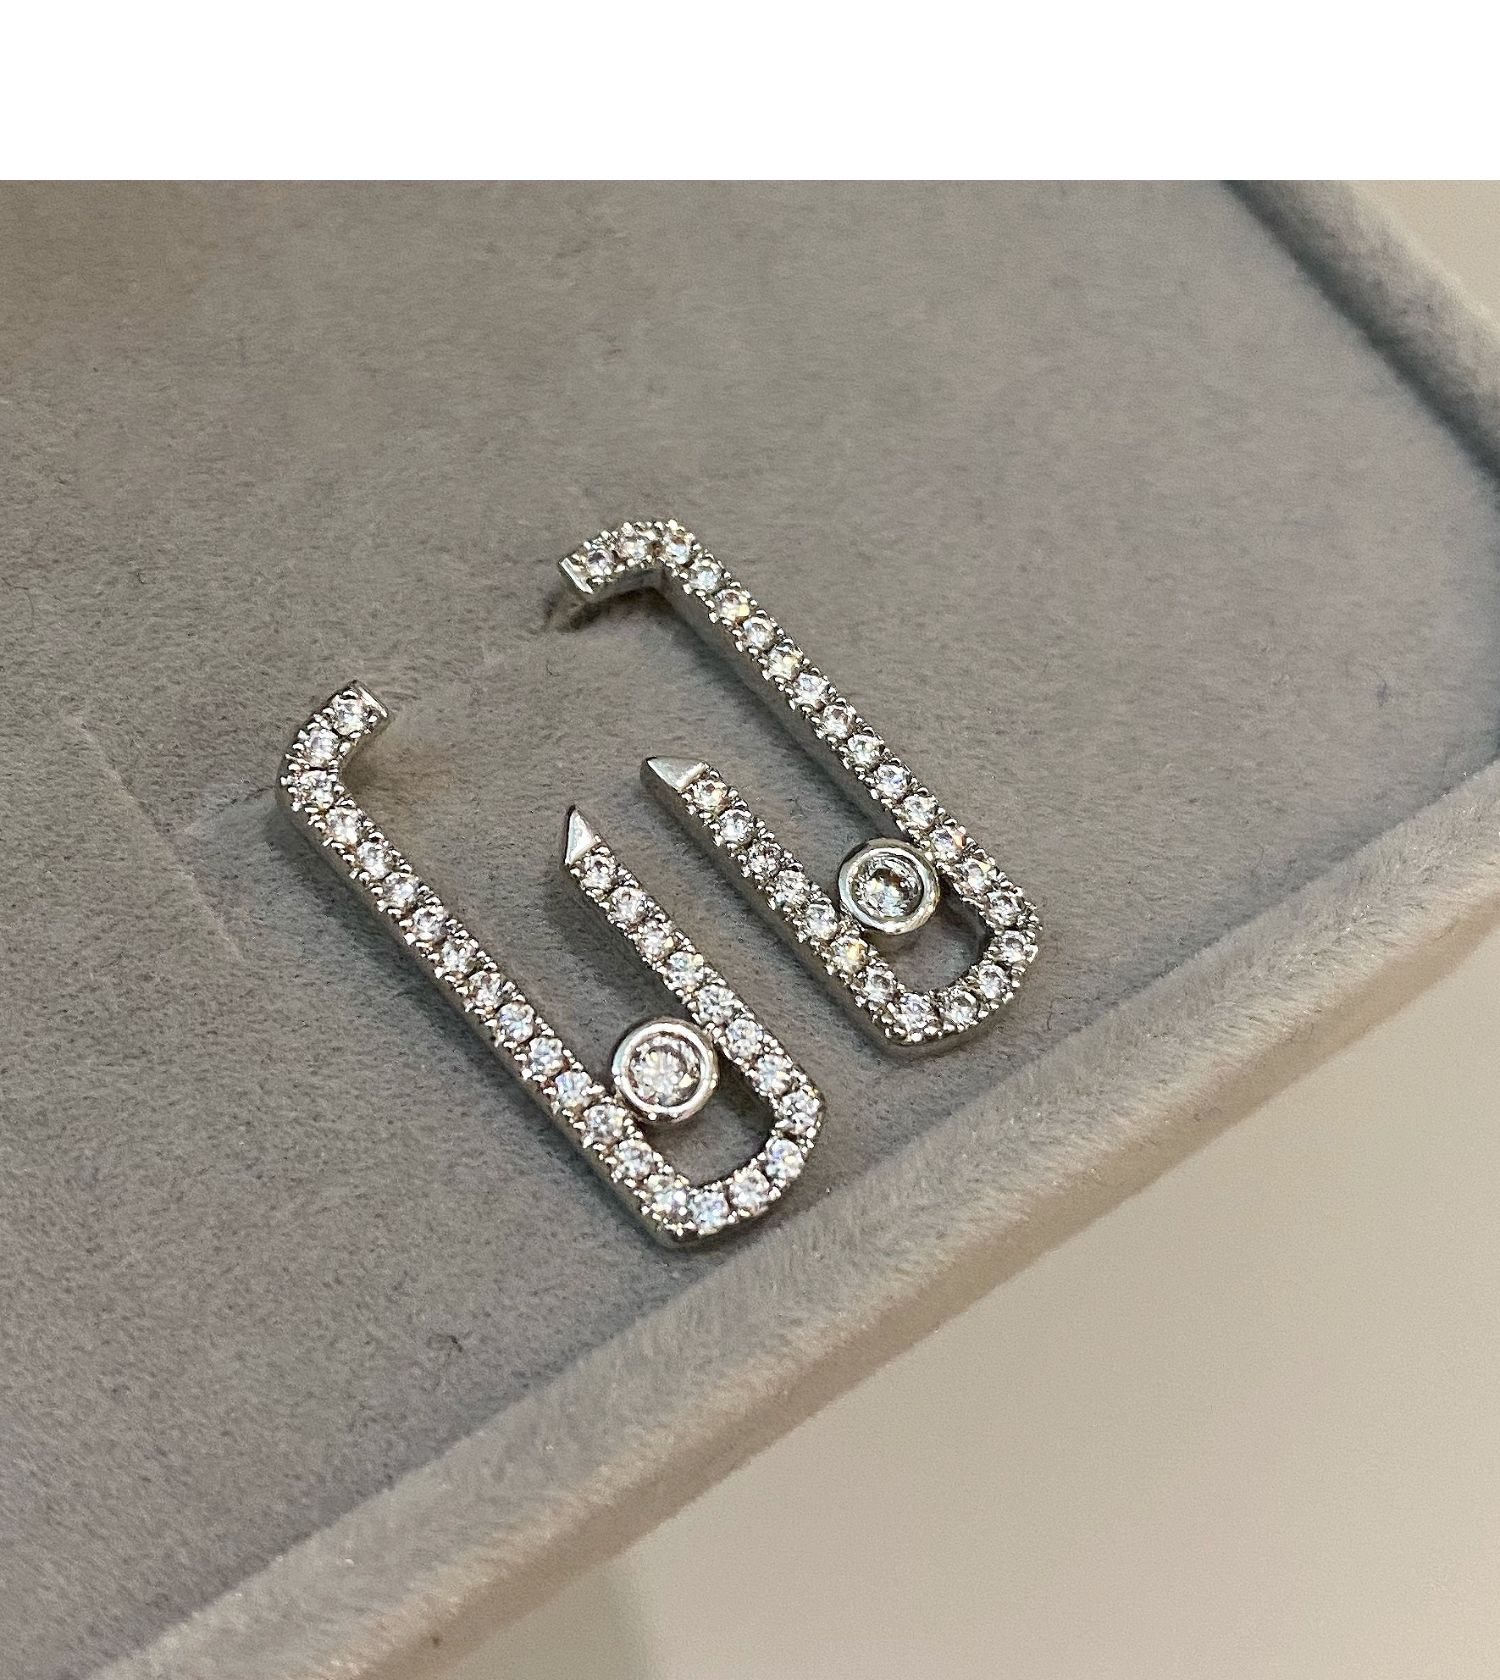 Original Earring Graphic Design Stylish and simple earrings Move Addiction Move Drop Valentine Earring CX200623